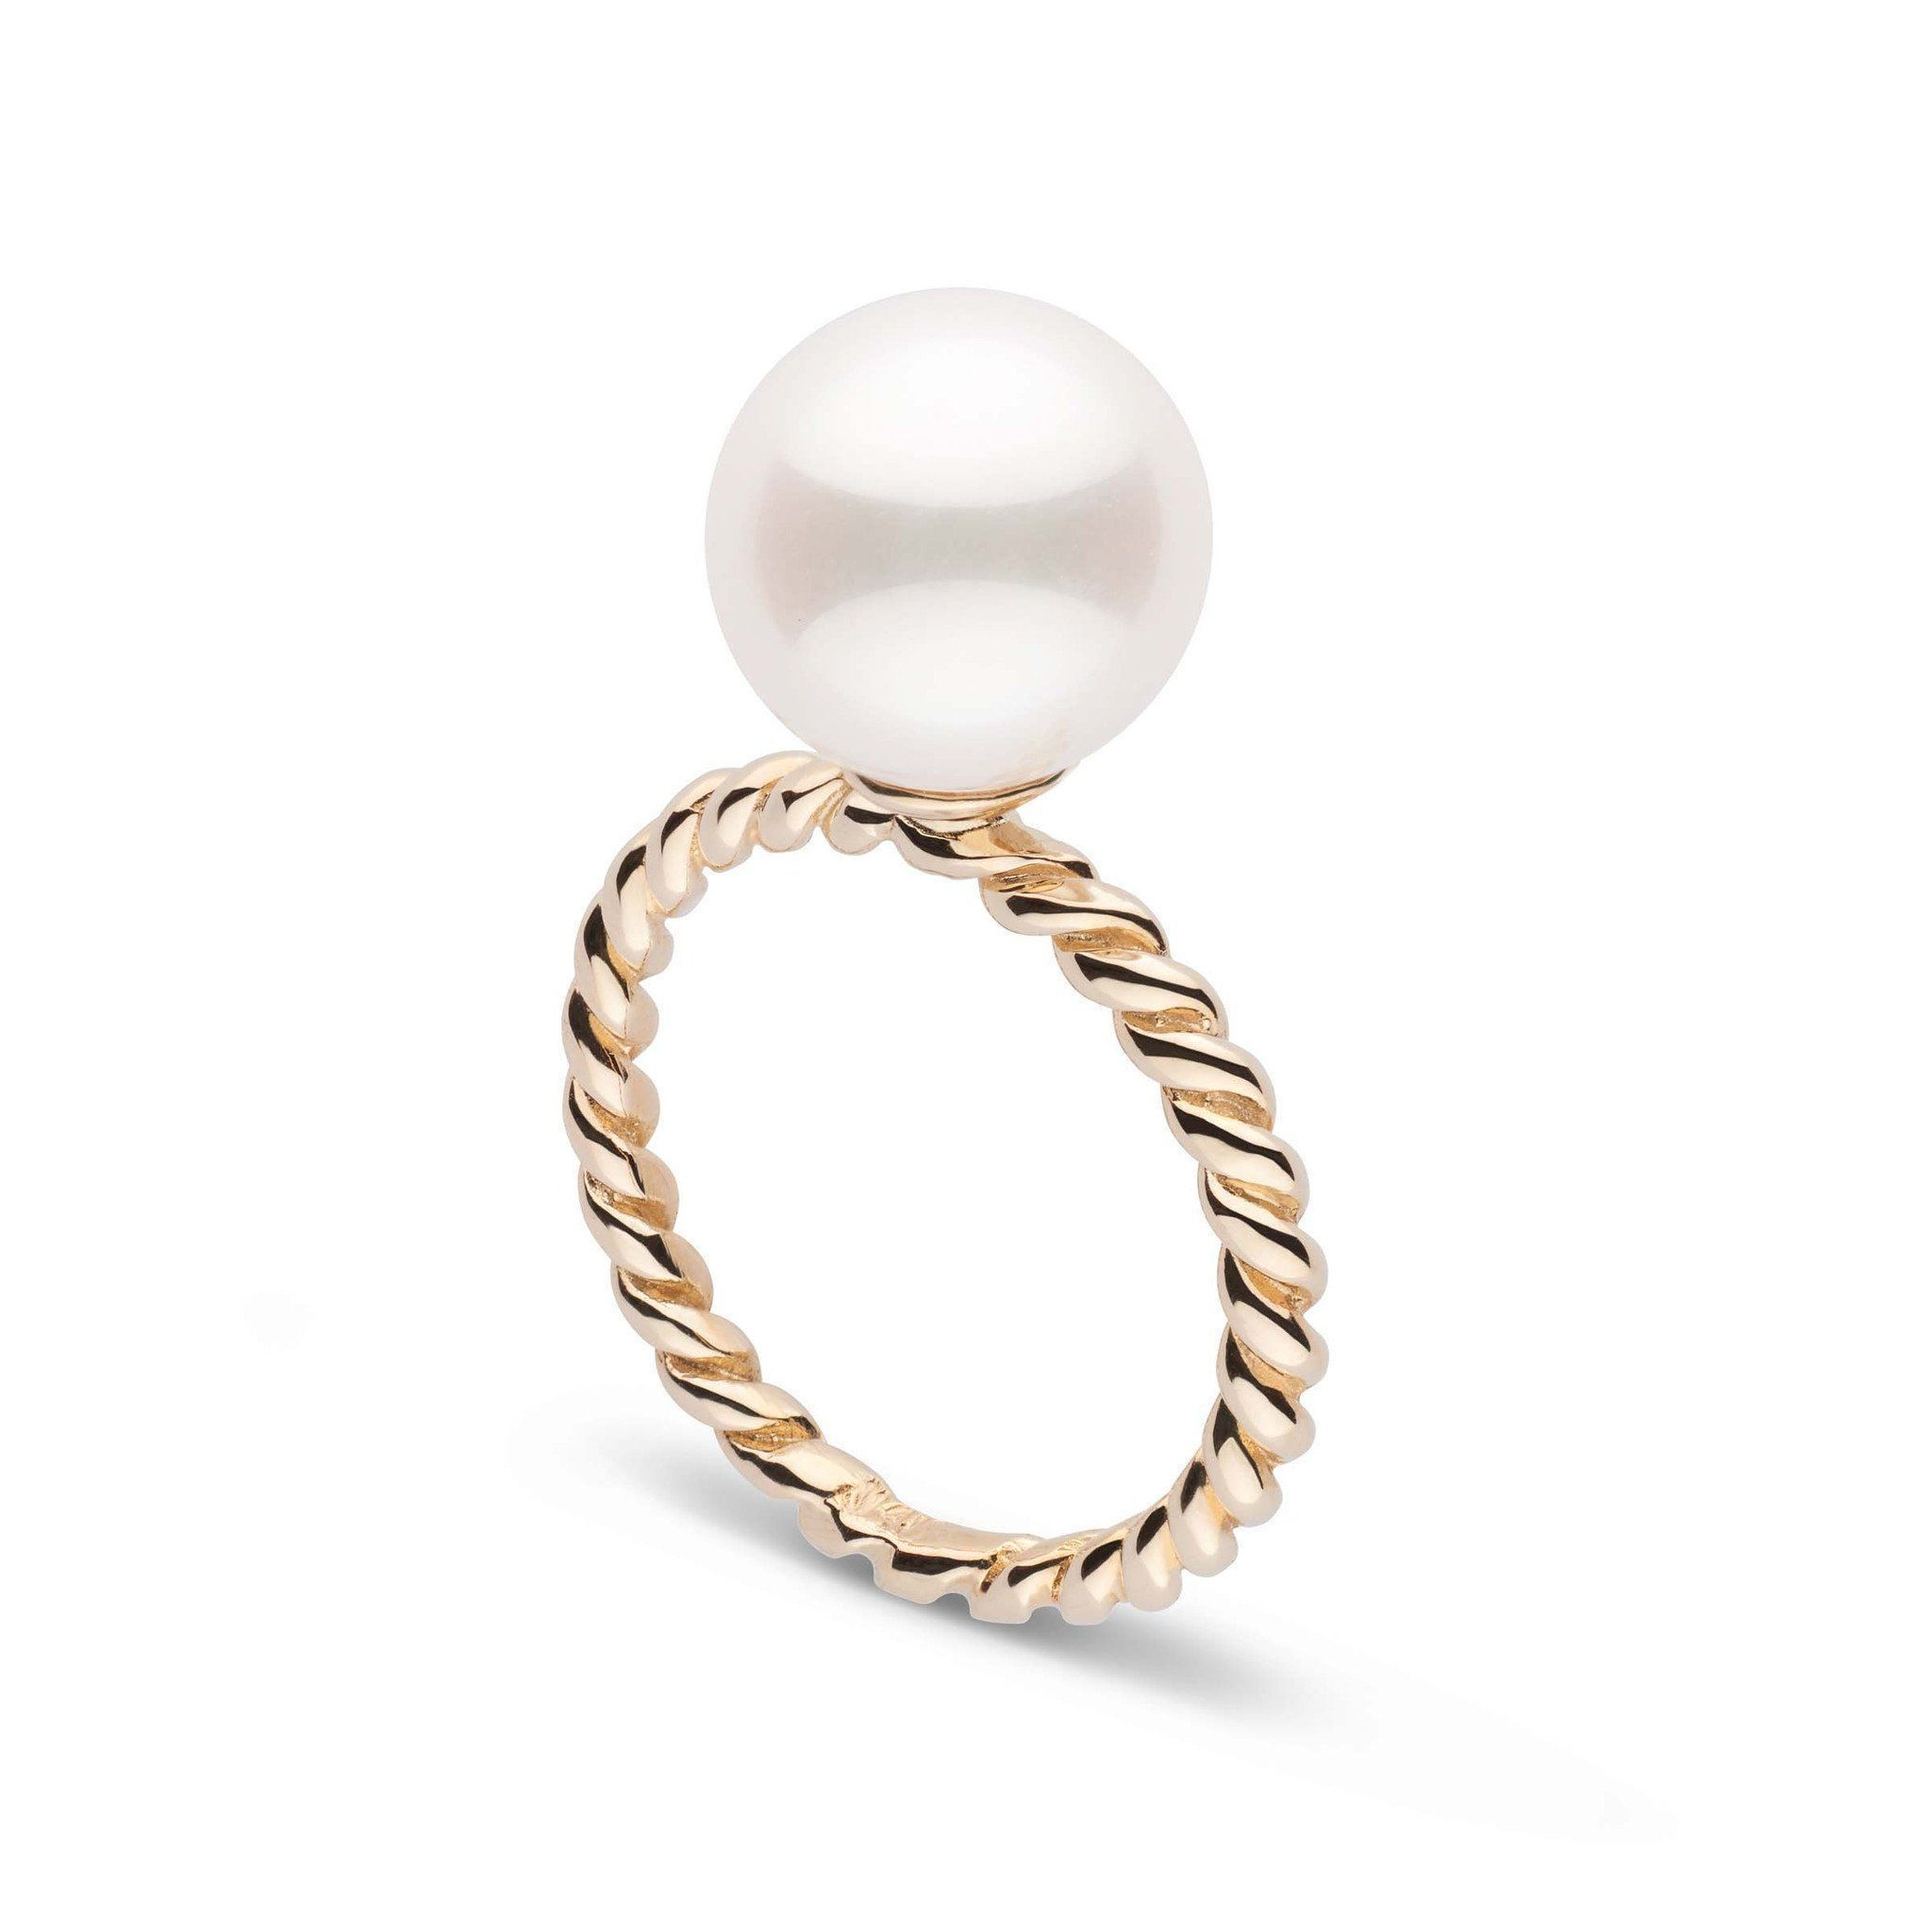 Twist Collection 10.0-11.0 mm Freshadama Pearl Ring